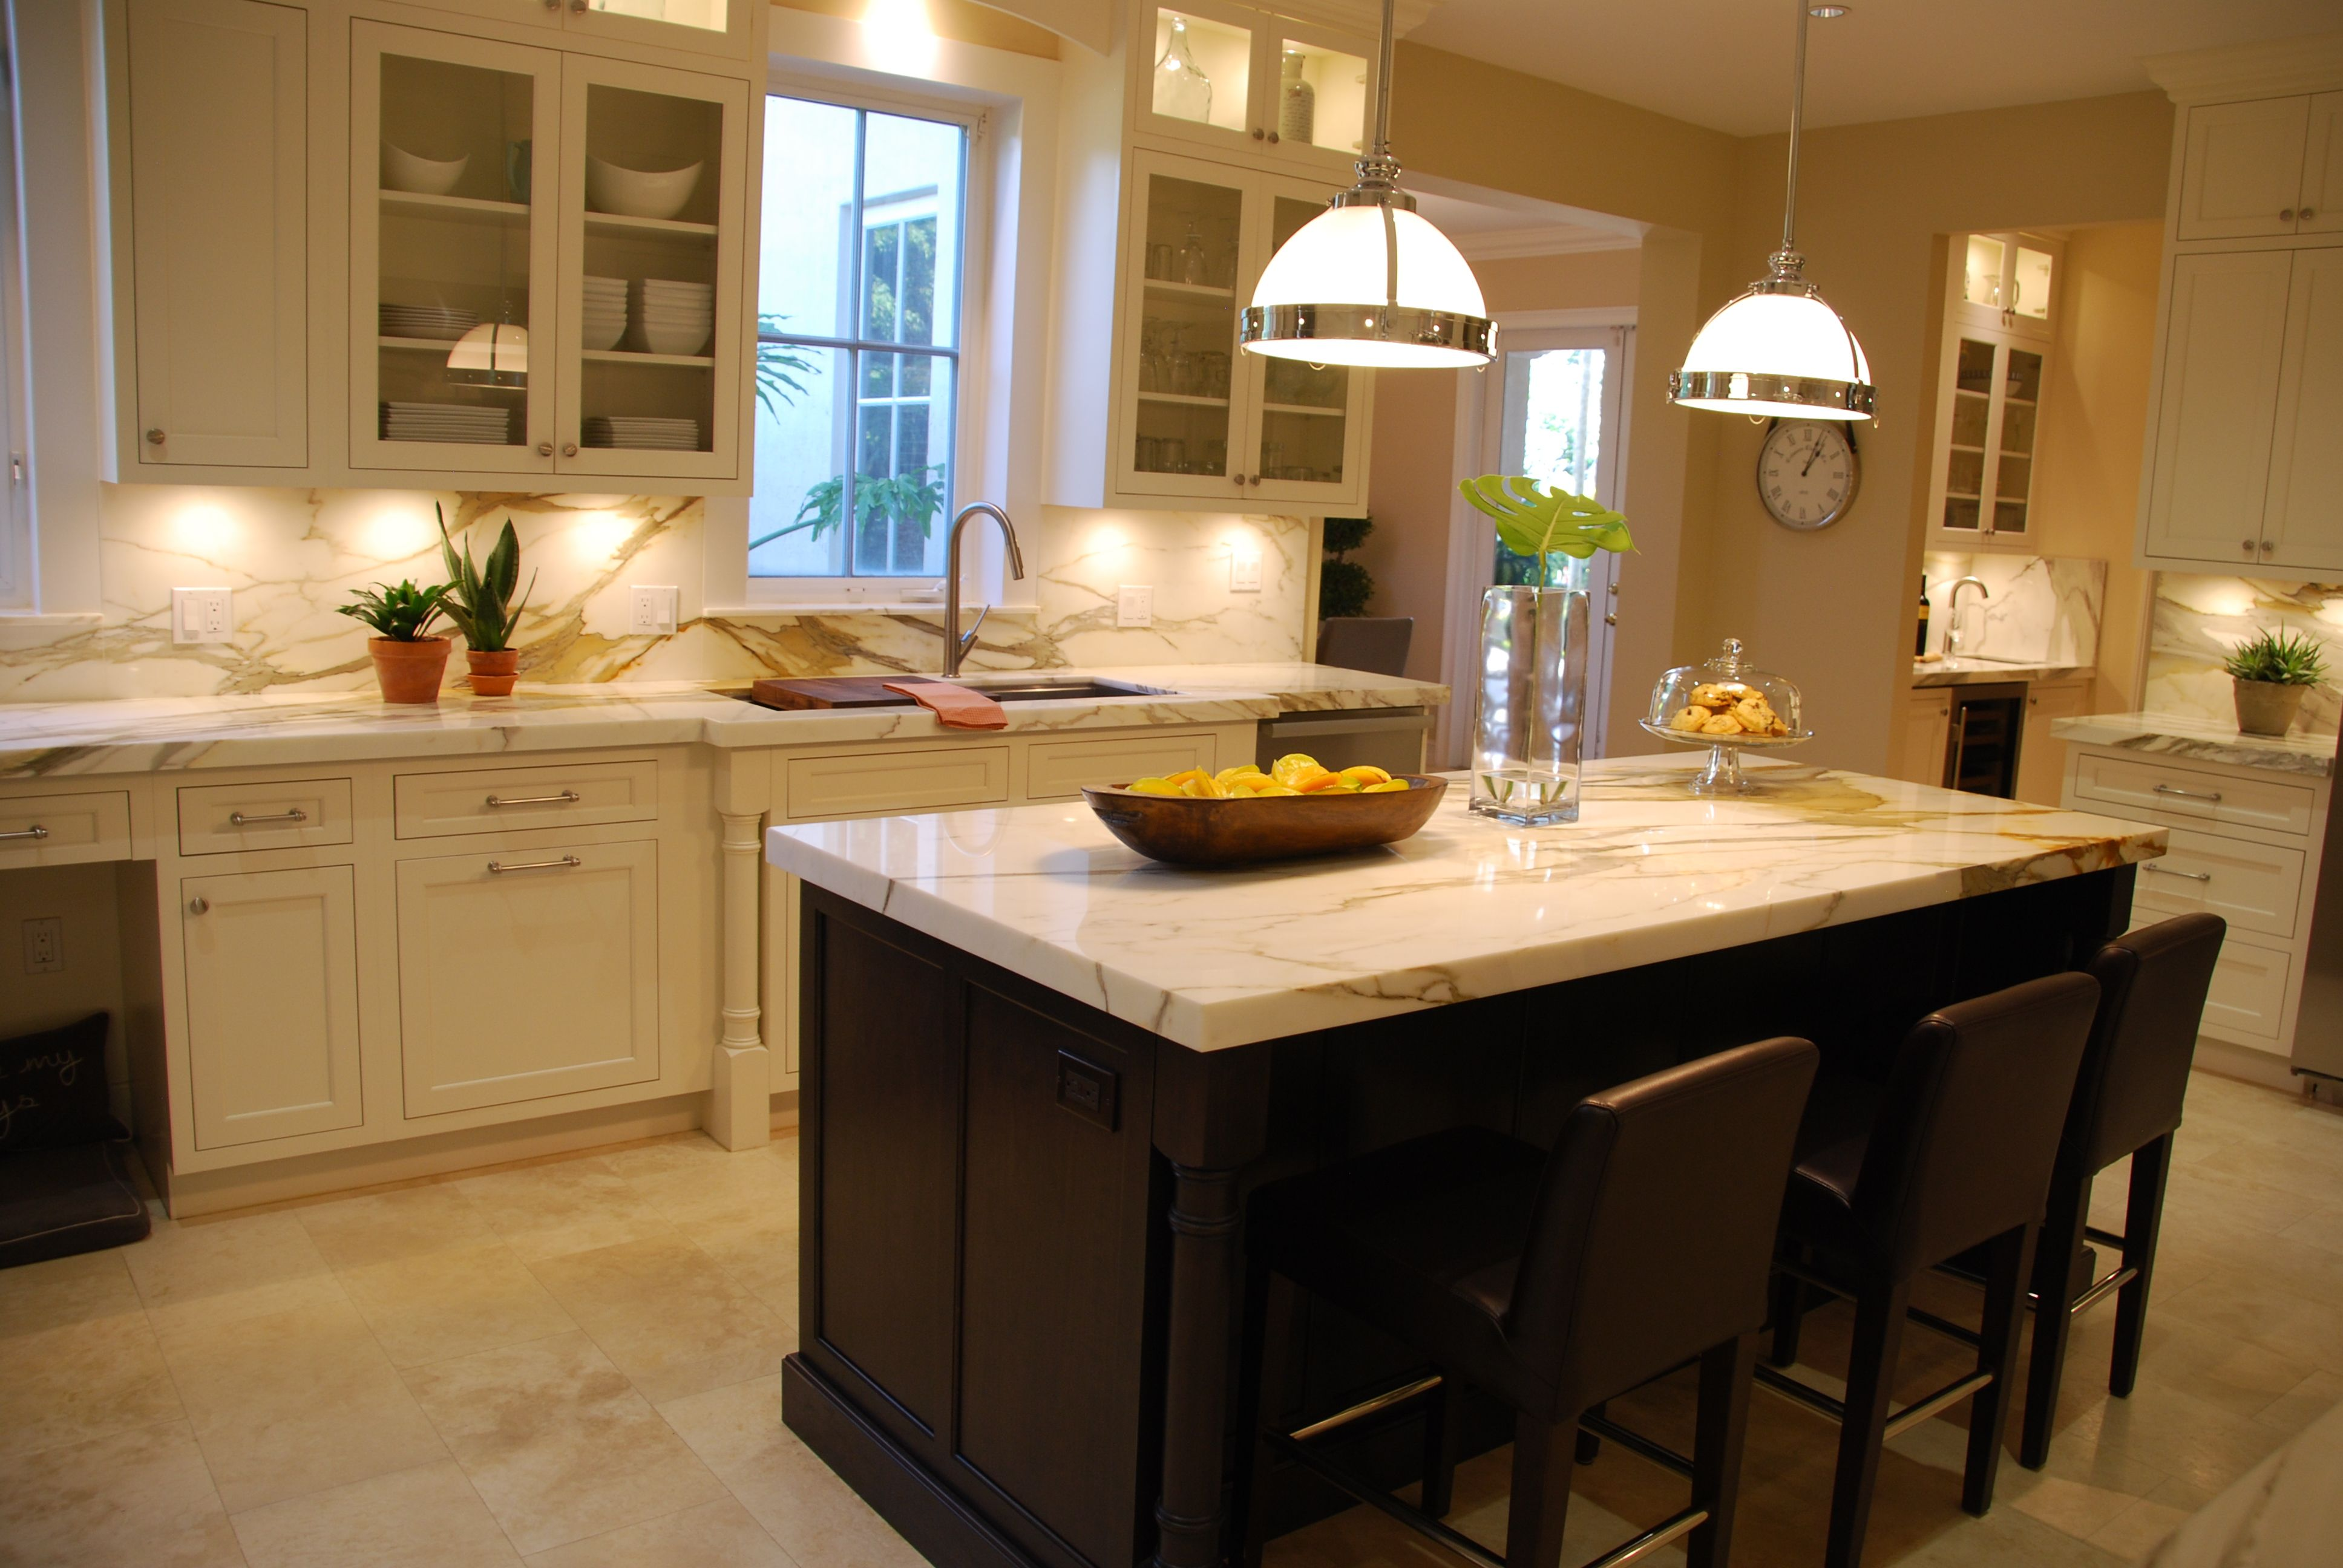 Superbe Congratulations To The Pelt Family For Your Recent Purchase Of Custom  Cabinetry With Eleet.